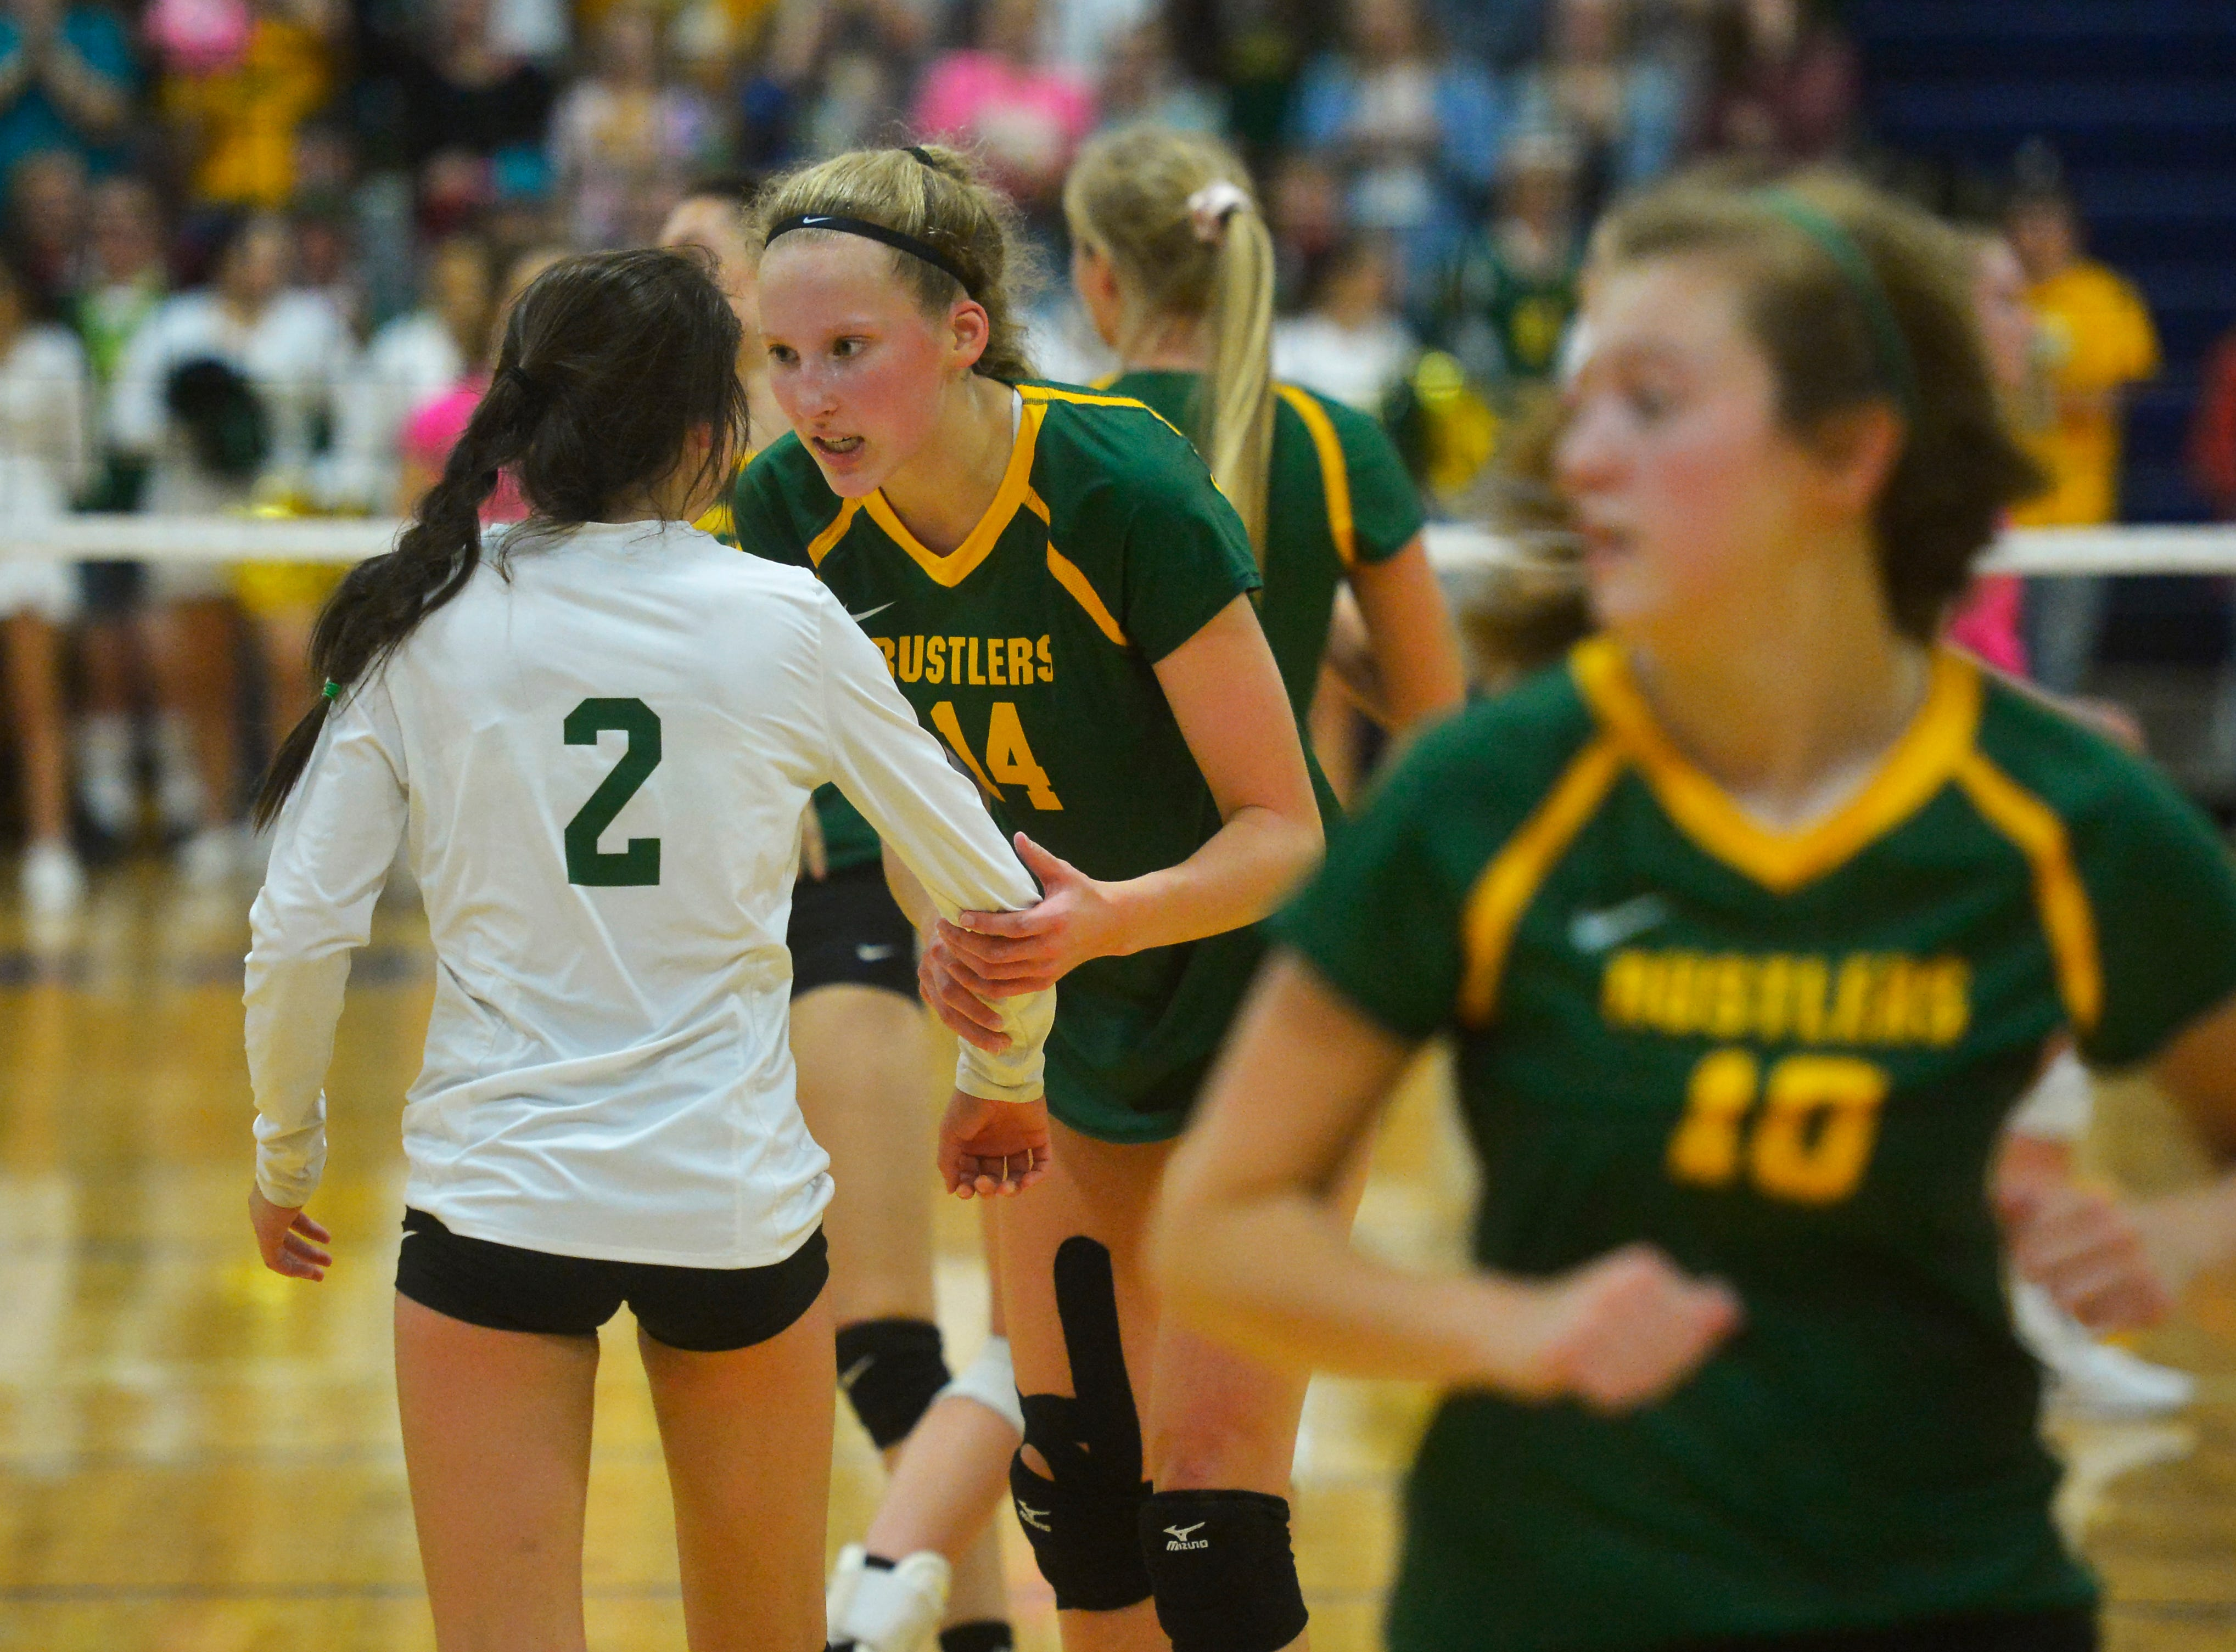 CMR's Allie Olsen relays a message to Lauren Lindseth late in the fifth game of the crosstown volleyball match in the Swarthout Fieldhouse, Tuesday.